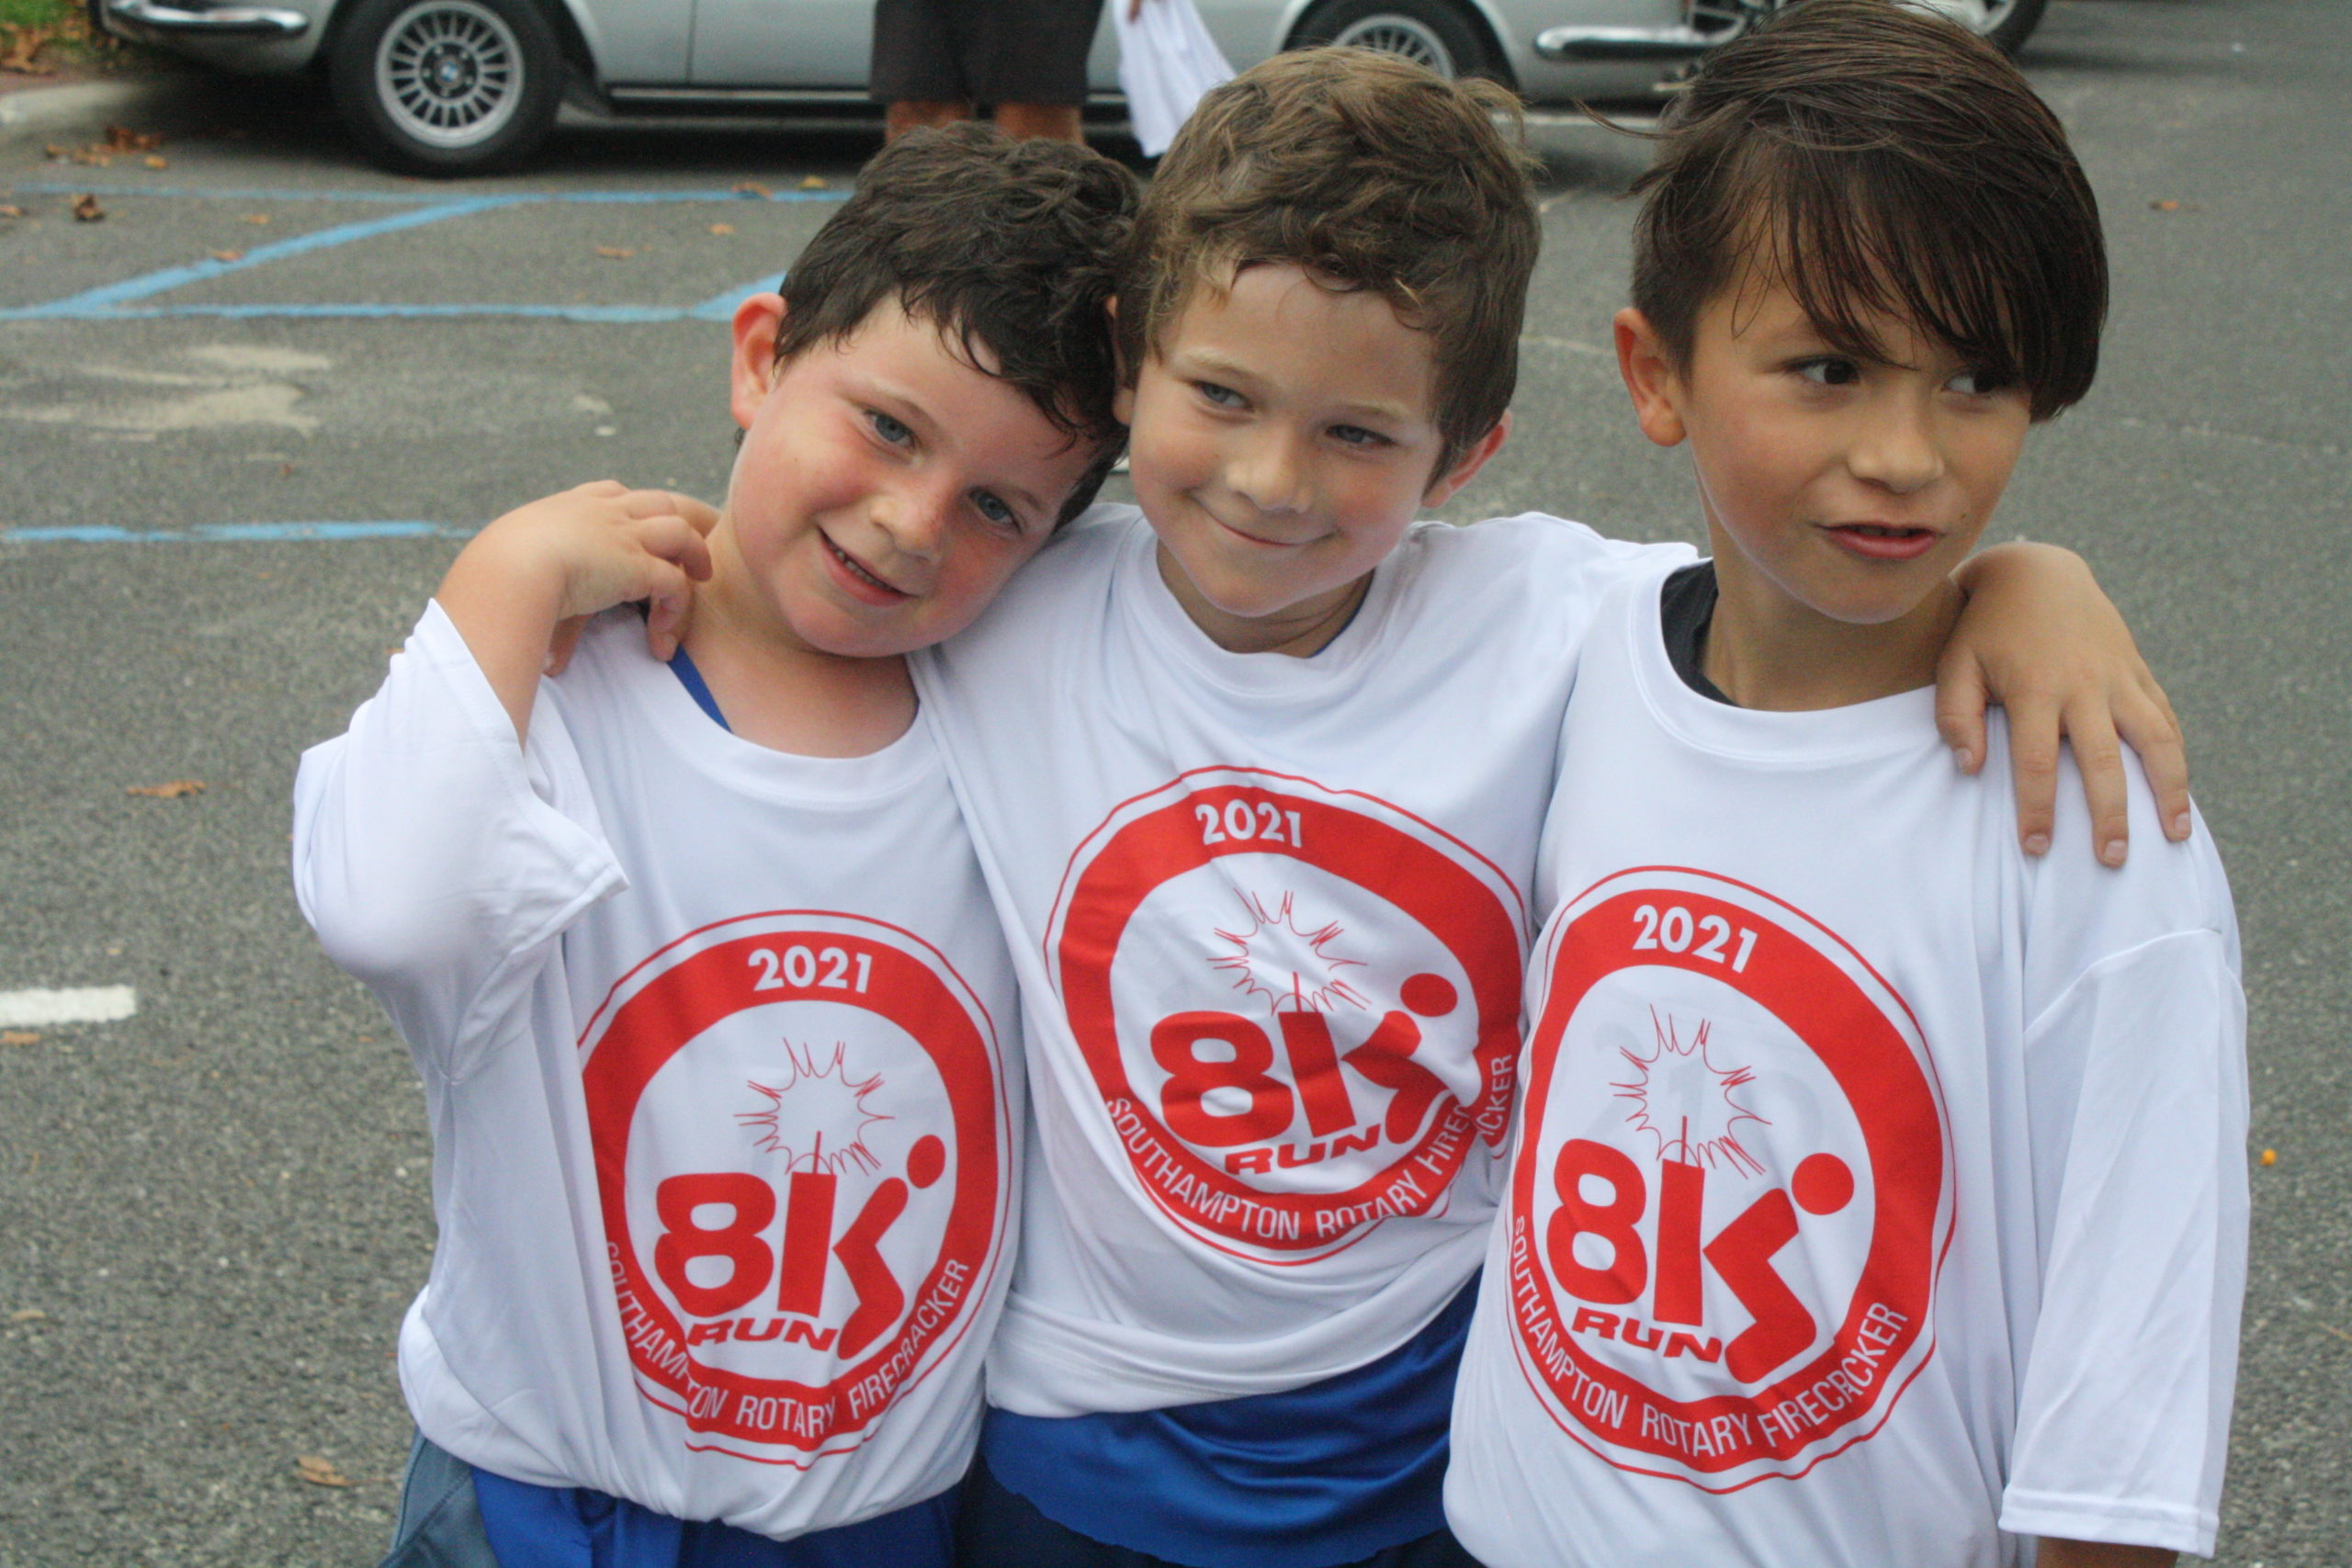 Southampton Elementary School students, from left, Jack Brody, Robinson Brody, and Oliver Valezi.